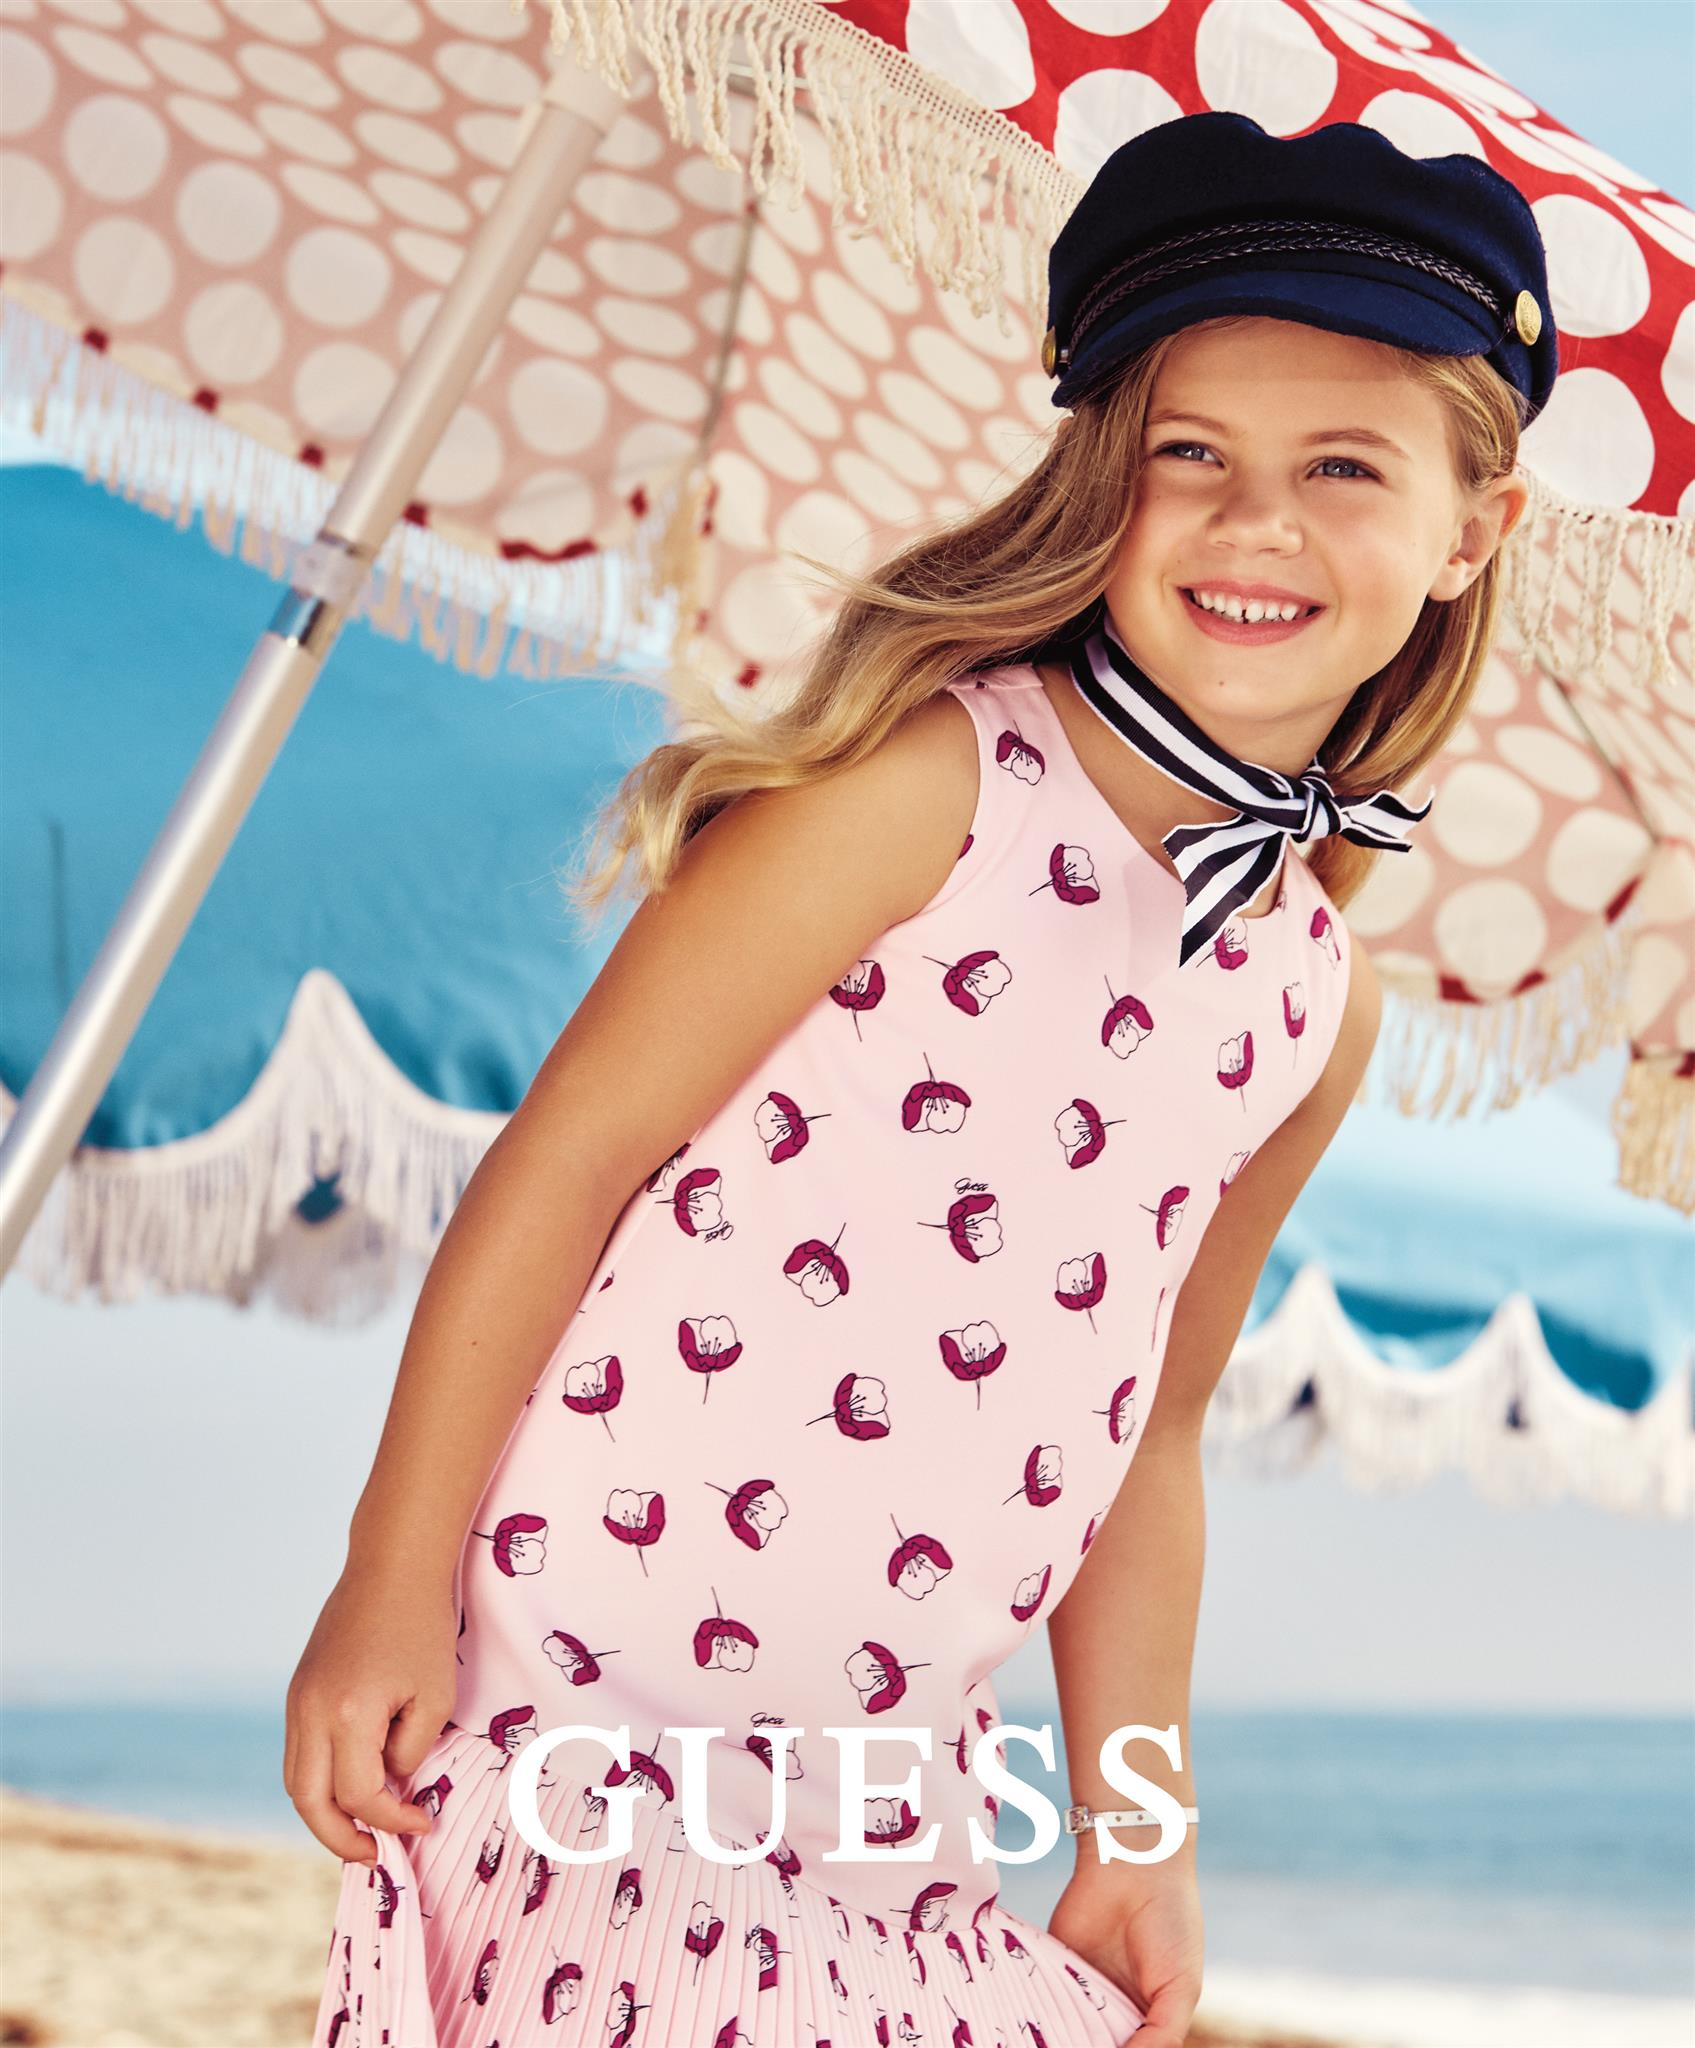 Child fashion Photographer | VIKA POBEDA | Guess Kids |